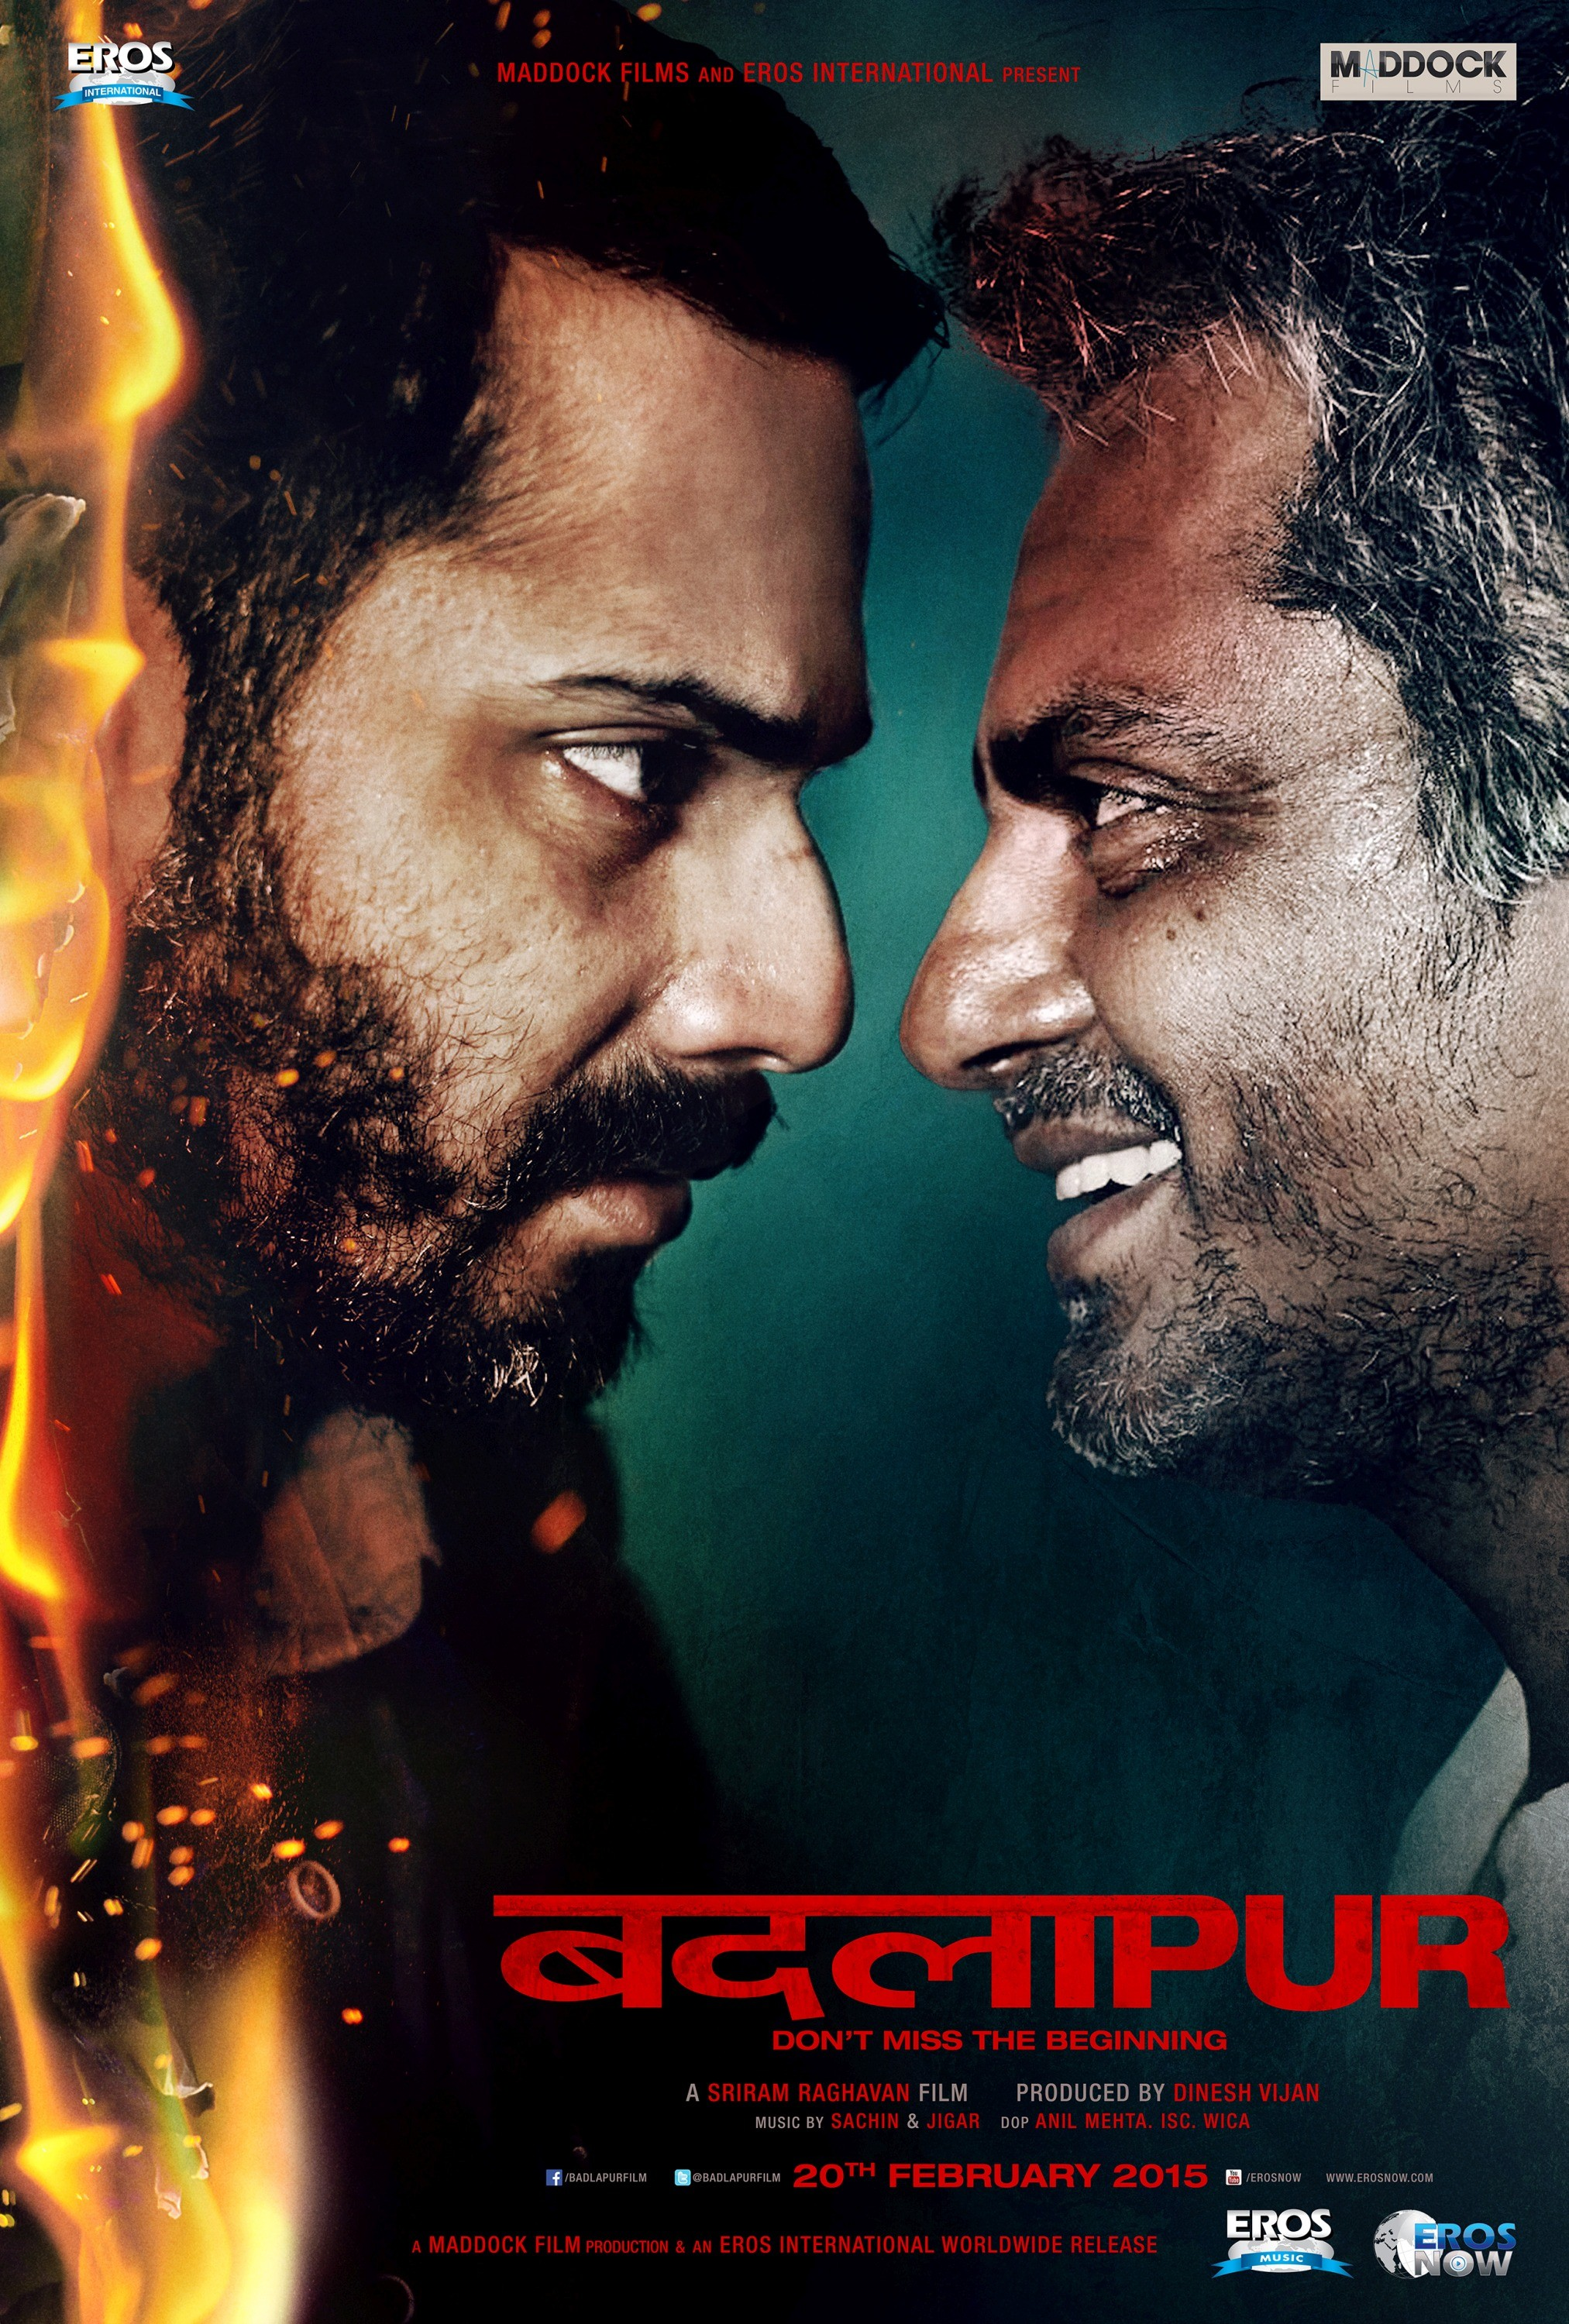 badlapur kickass torrent 1080p